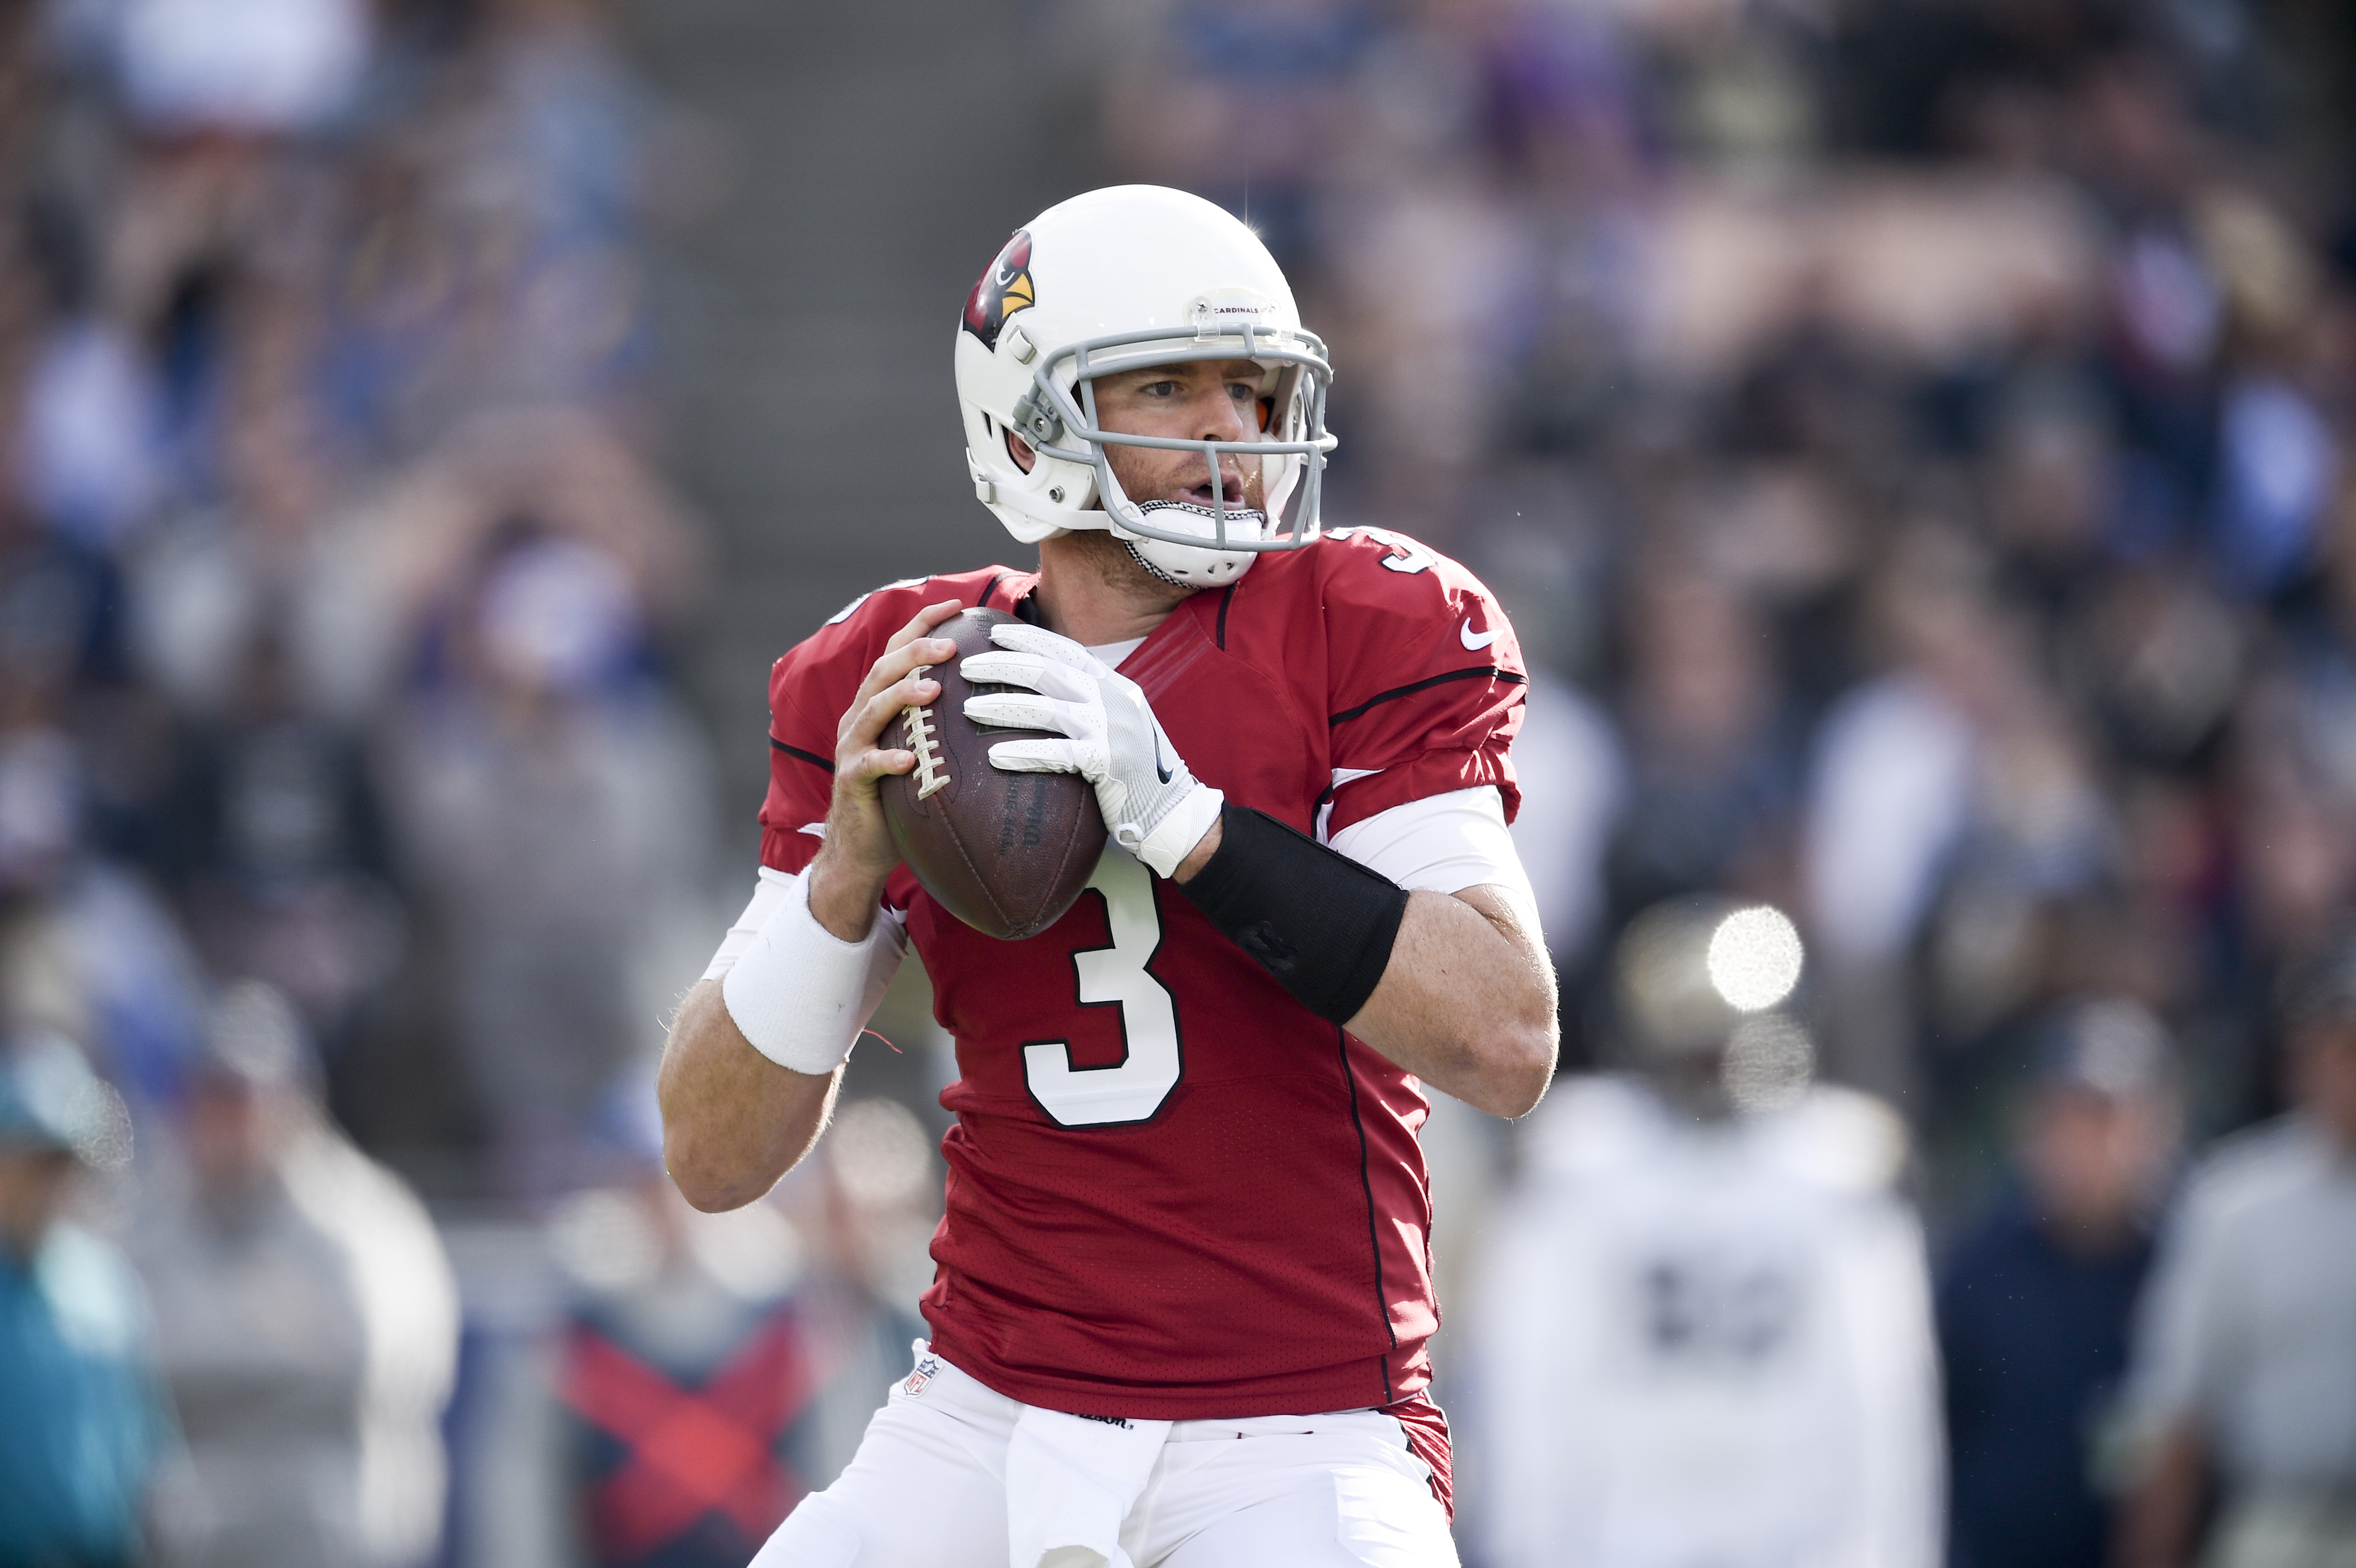 Jan 1, 2017; Los Angeles, CA, USA; Arizona Cardinals quarterback Carson Palmer (3) in action against the Los Angeles Rams during the first quarter at Los Angeles Memorial Coliseum. Mandatory Credit: Kelvin Kuo-USA TODAY Sports